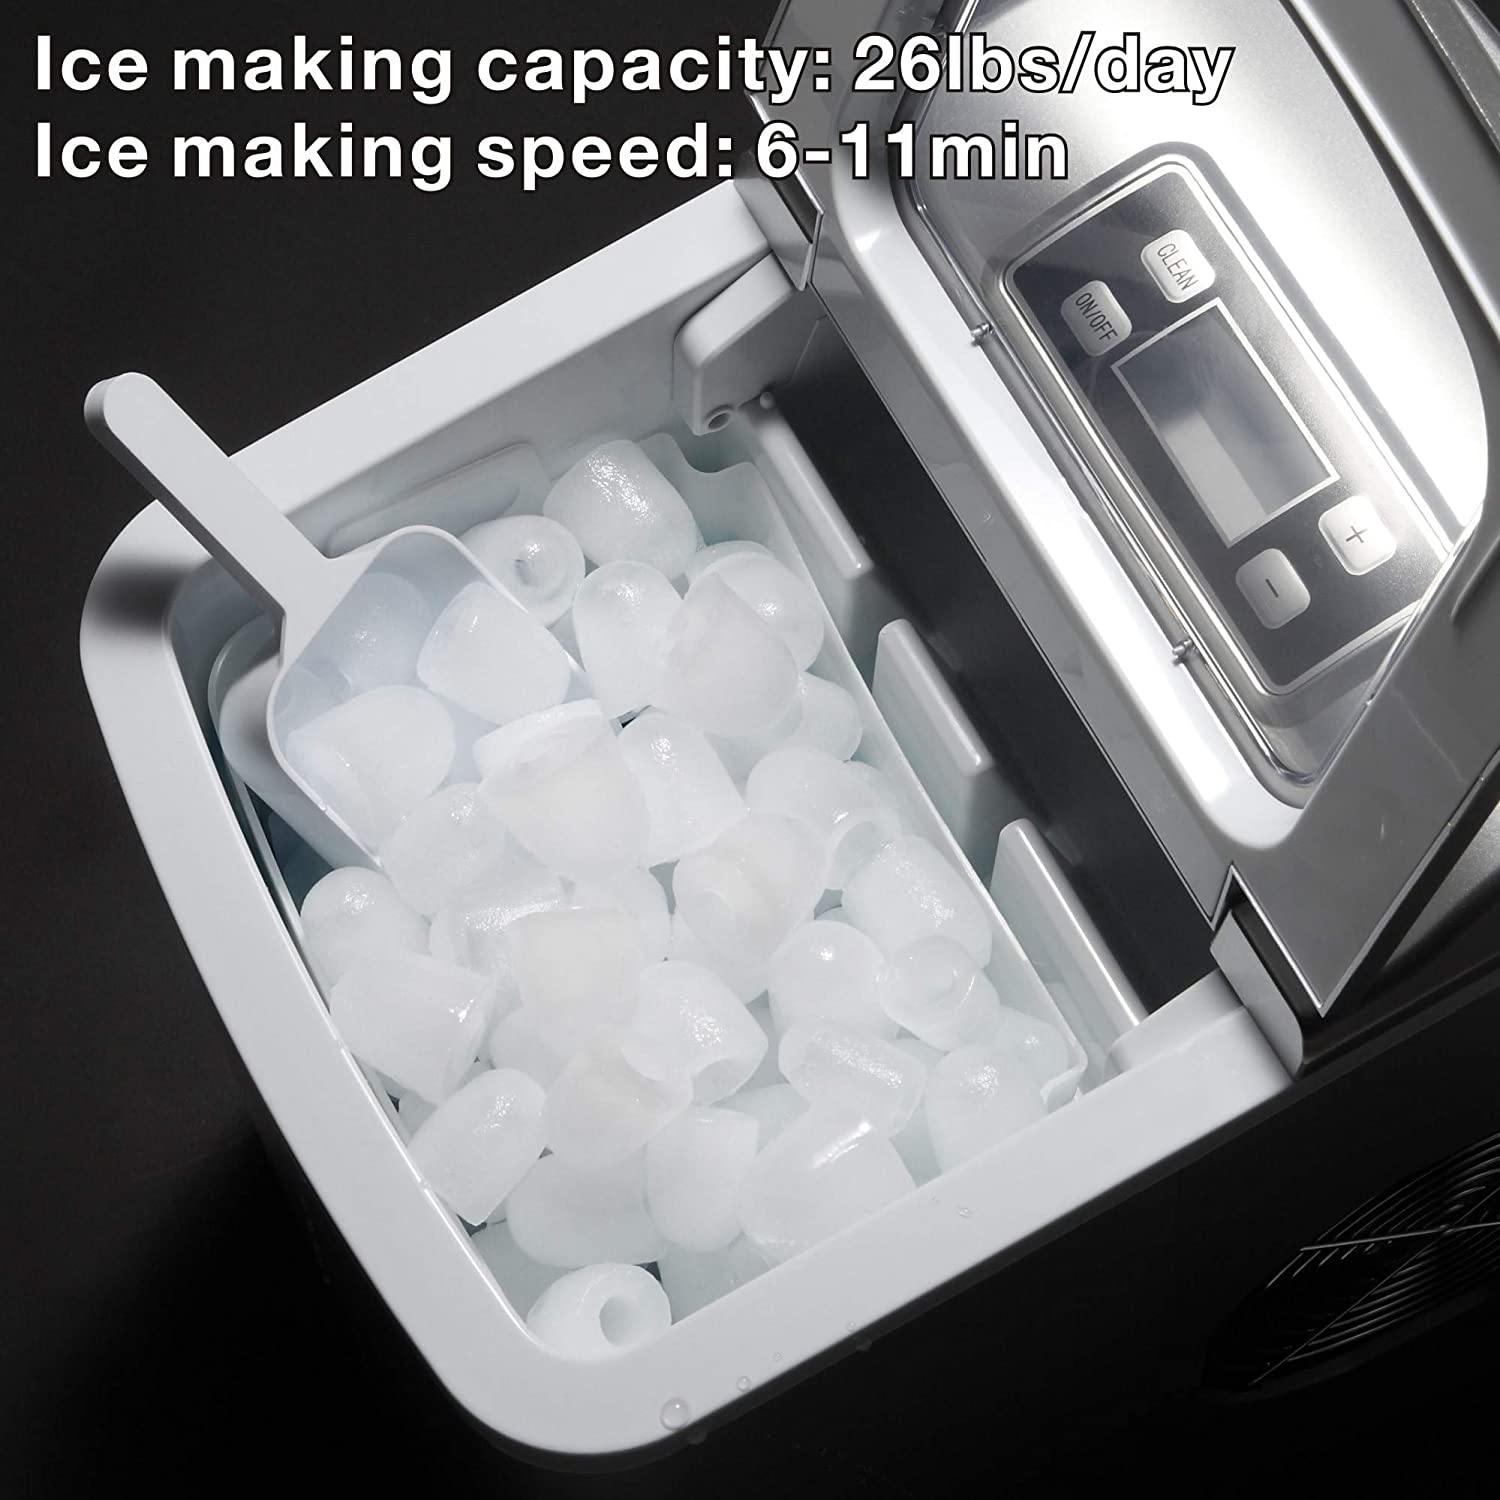 AGLUCKY Portable Ice Maker Machine Stainless Steel Covers,Countertop Automatic Ice Maker,26lbs//24h,9pcs S//L Size Ice Cube Ready in 6-13 Mins,1.5lbs Ice Storage with Ice Scoop,Indicator Function Black